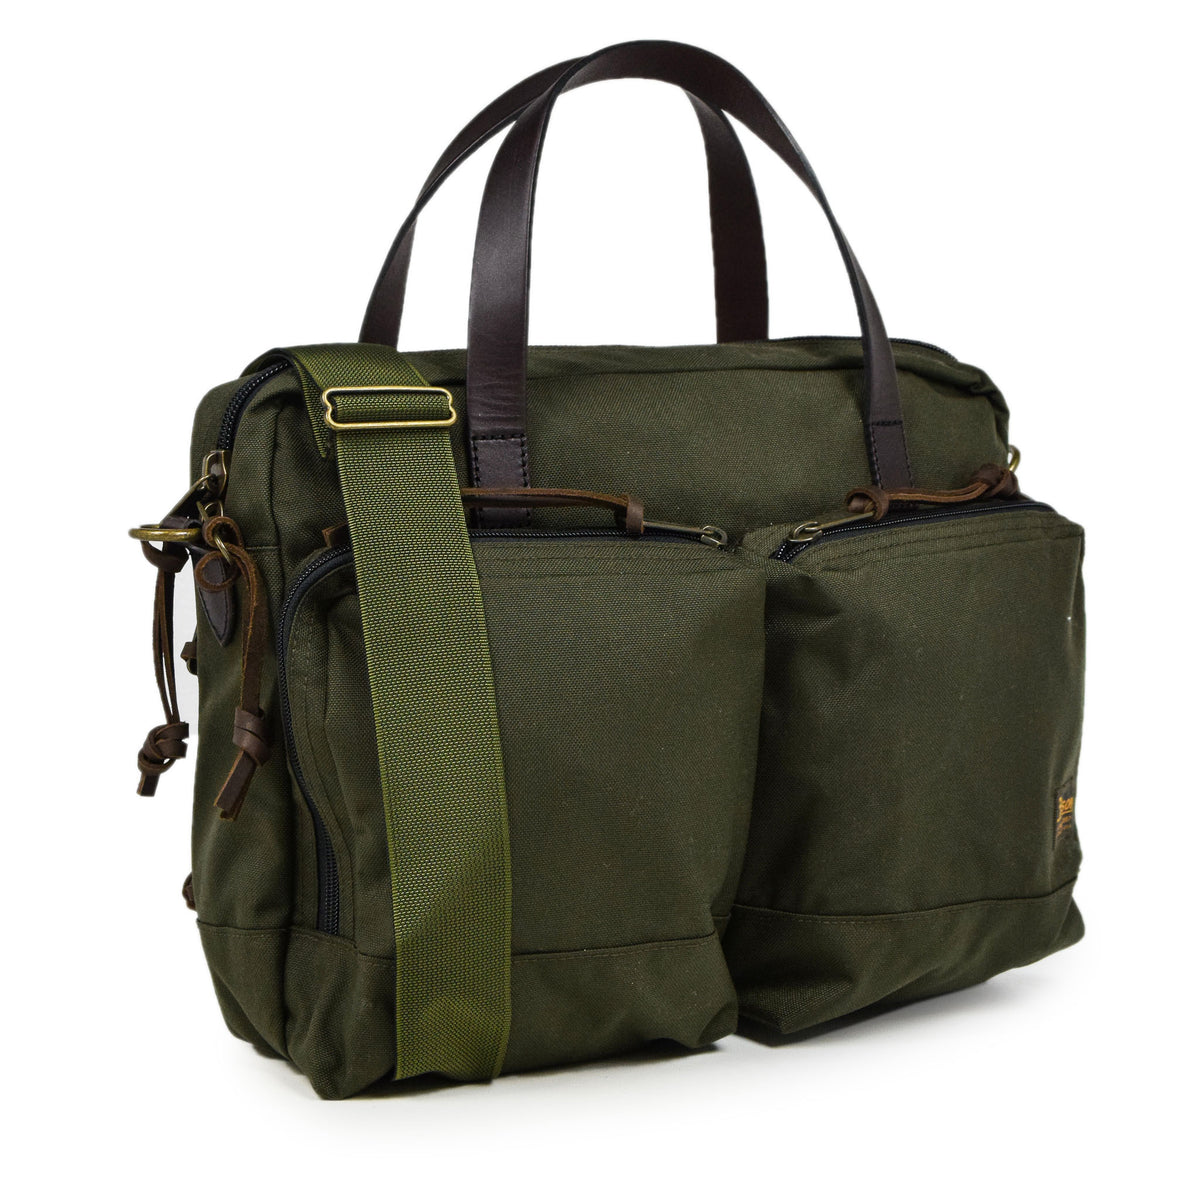 Filson Dryden Briefcase Shoulder Bag Otter Green Side